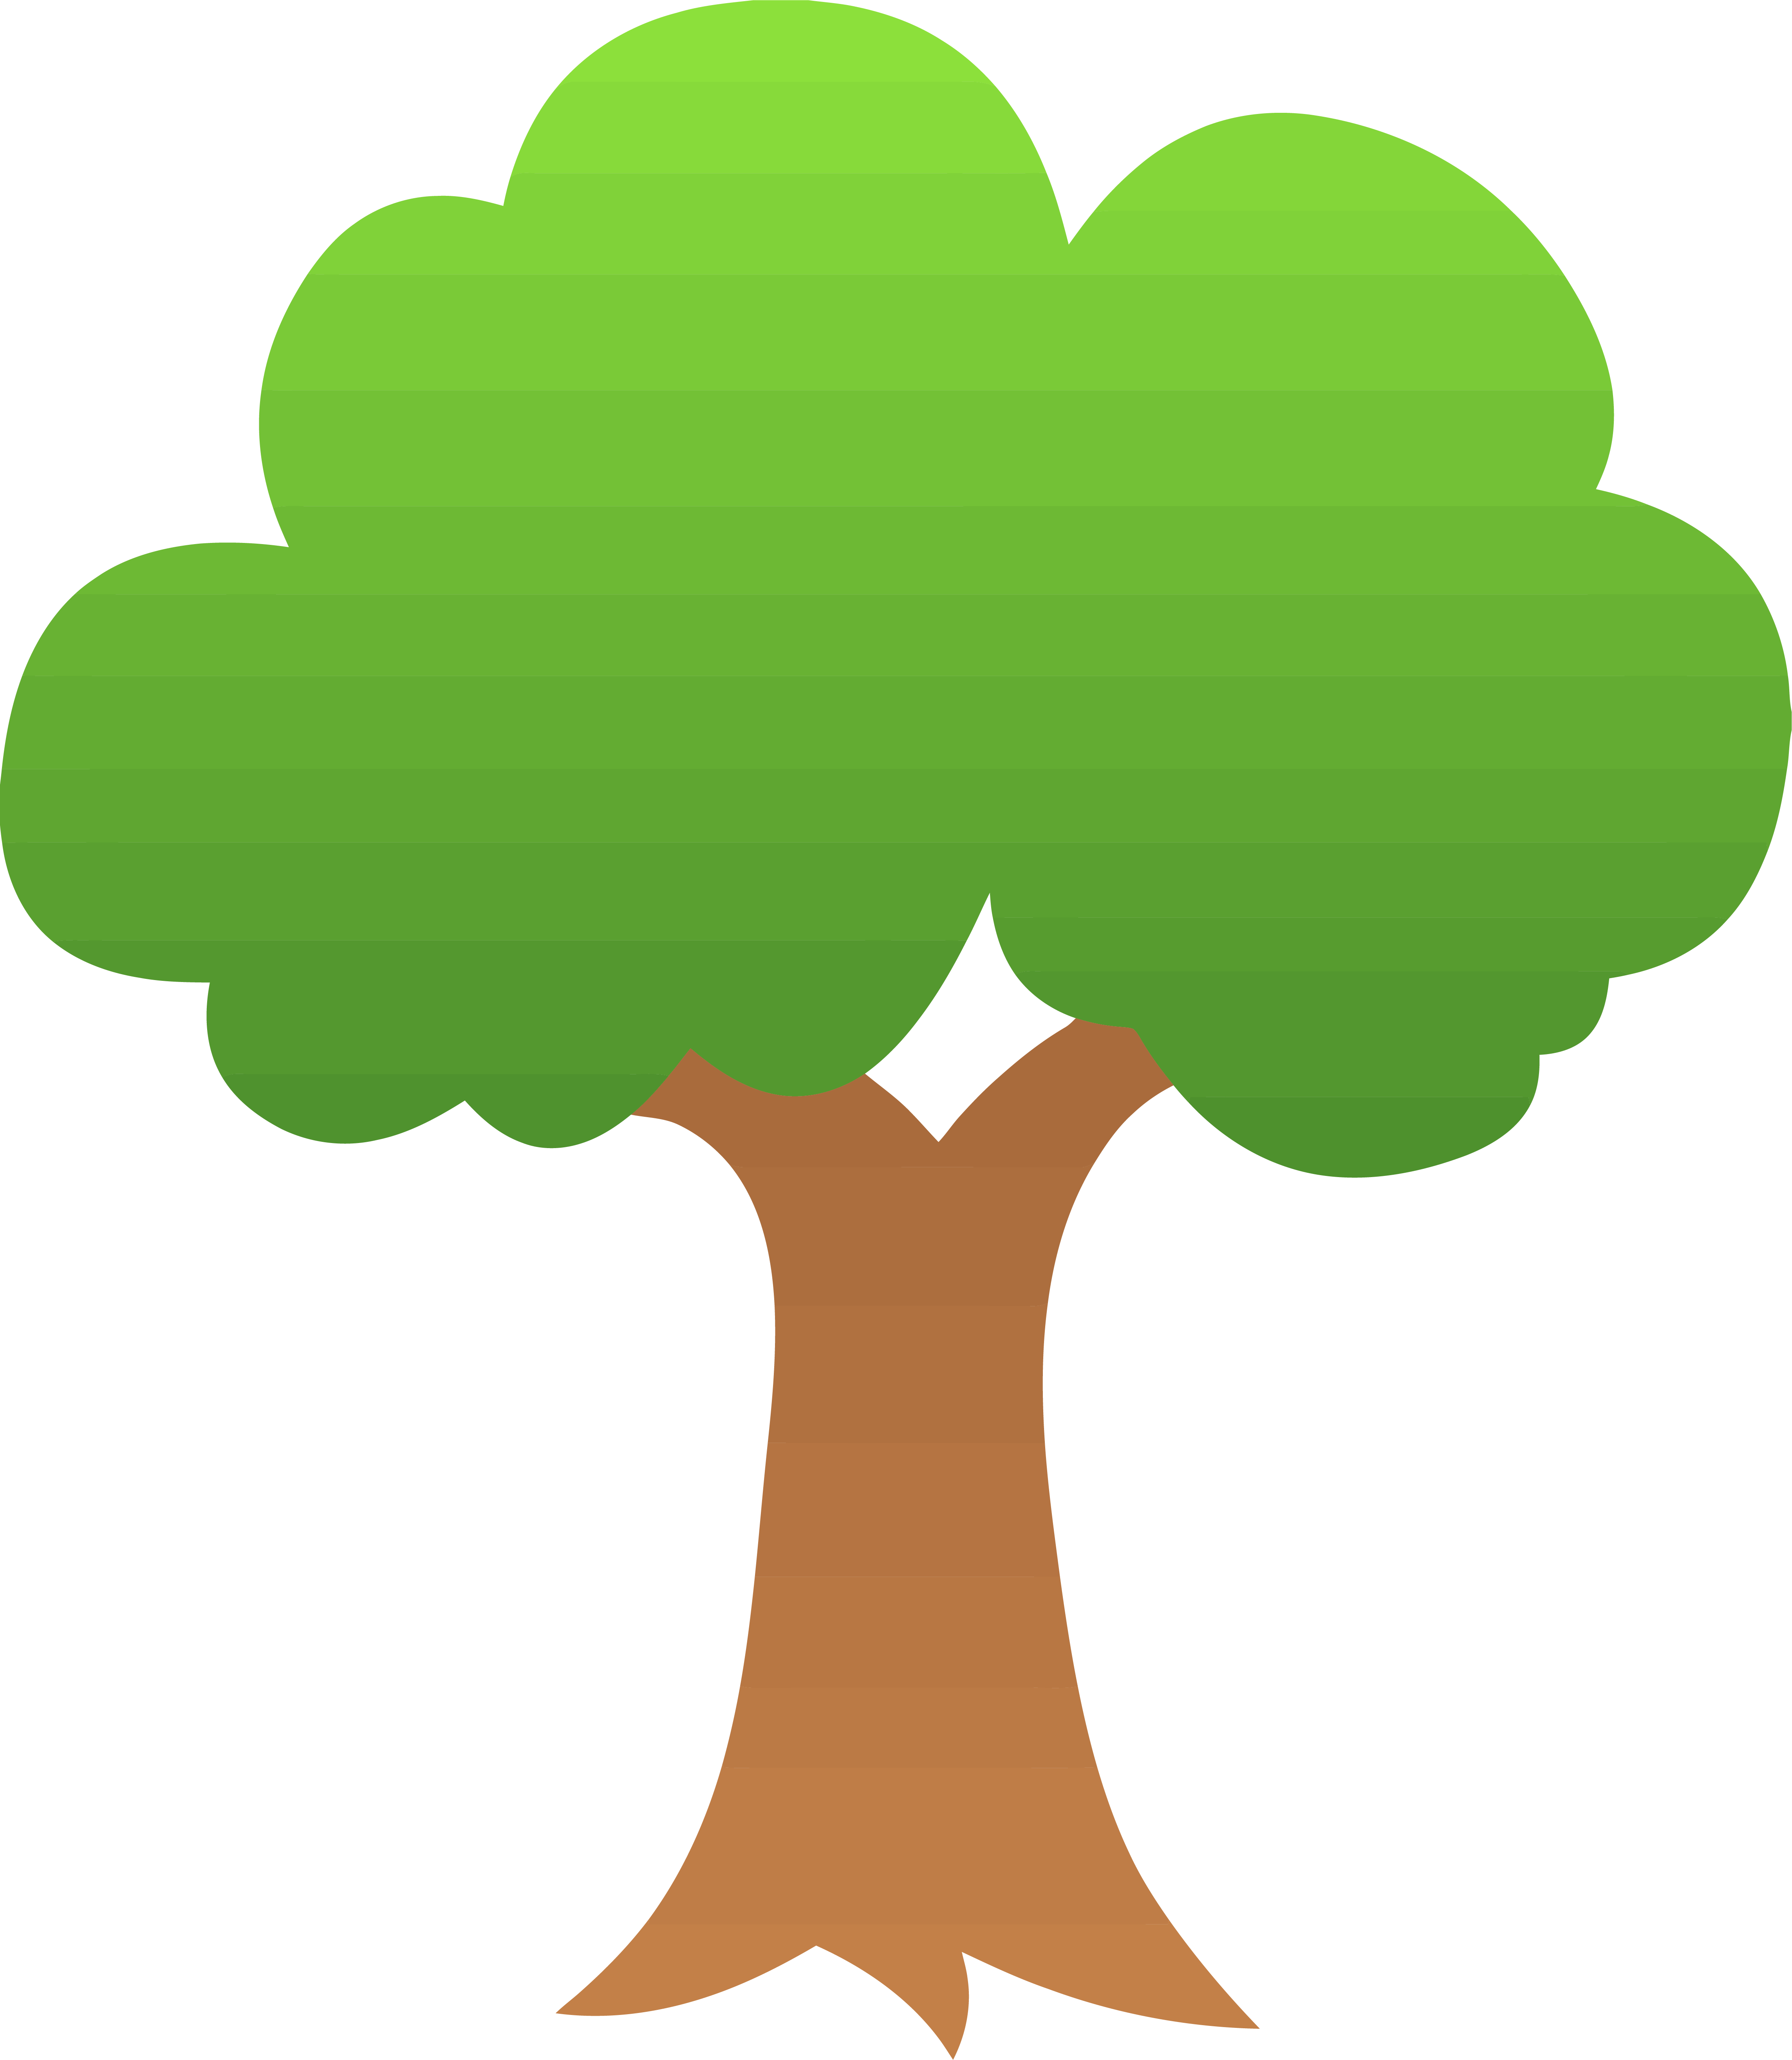 Apple tree clipart picture transparent library Gradient Apple Tree Clipart Png | Clipartly.com picture transparent library